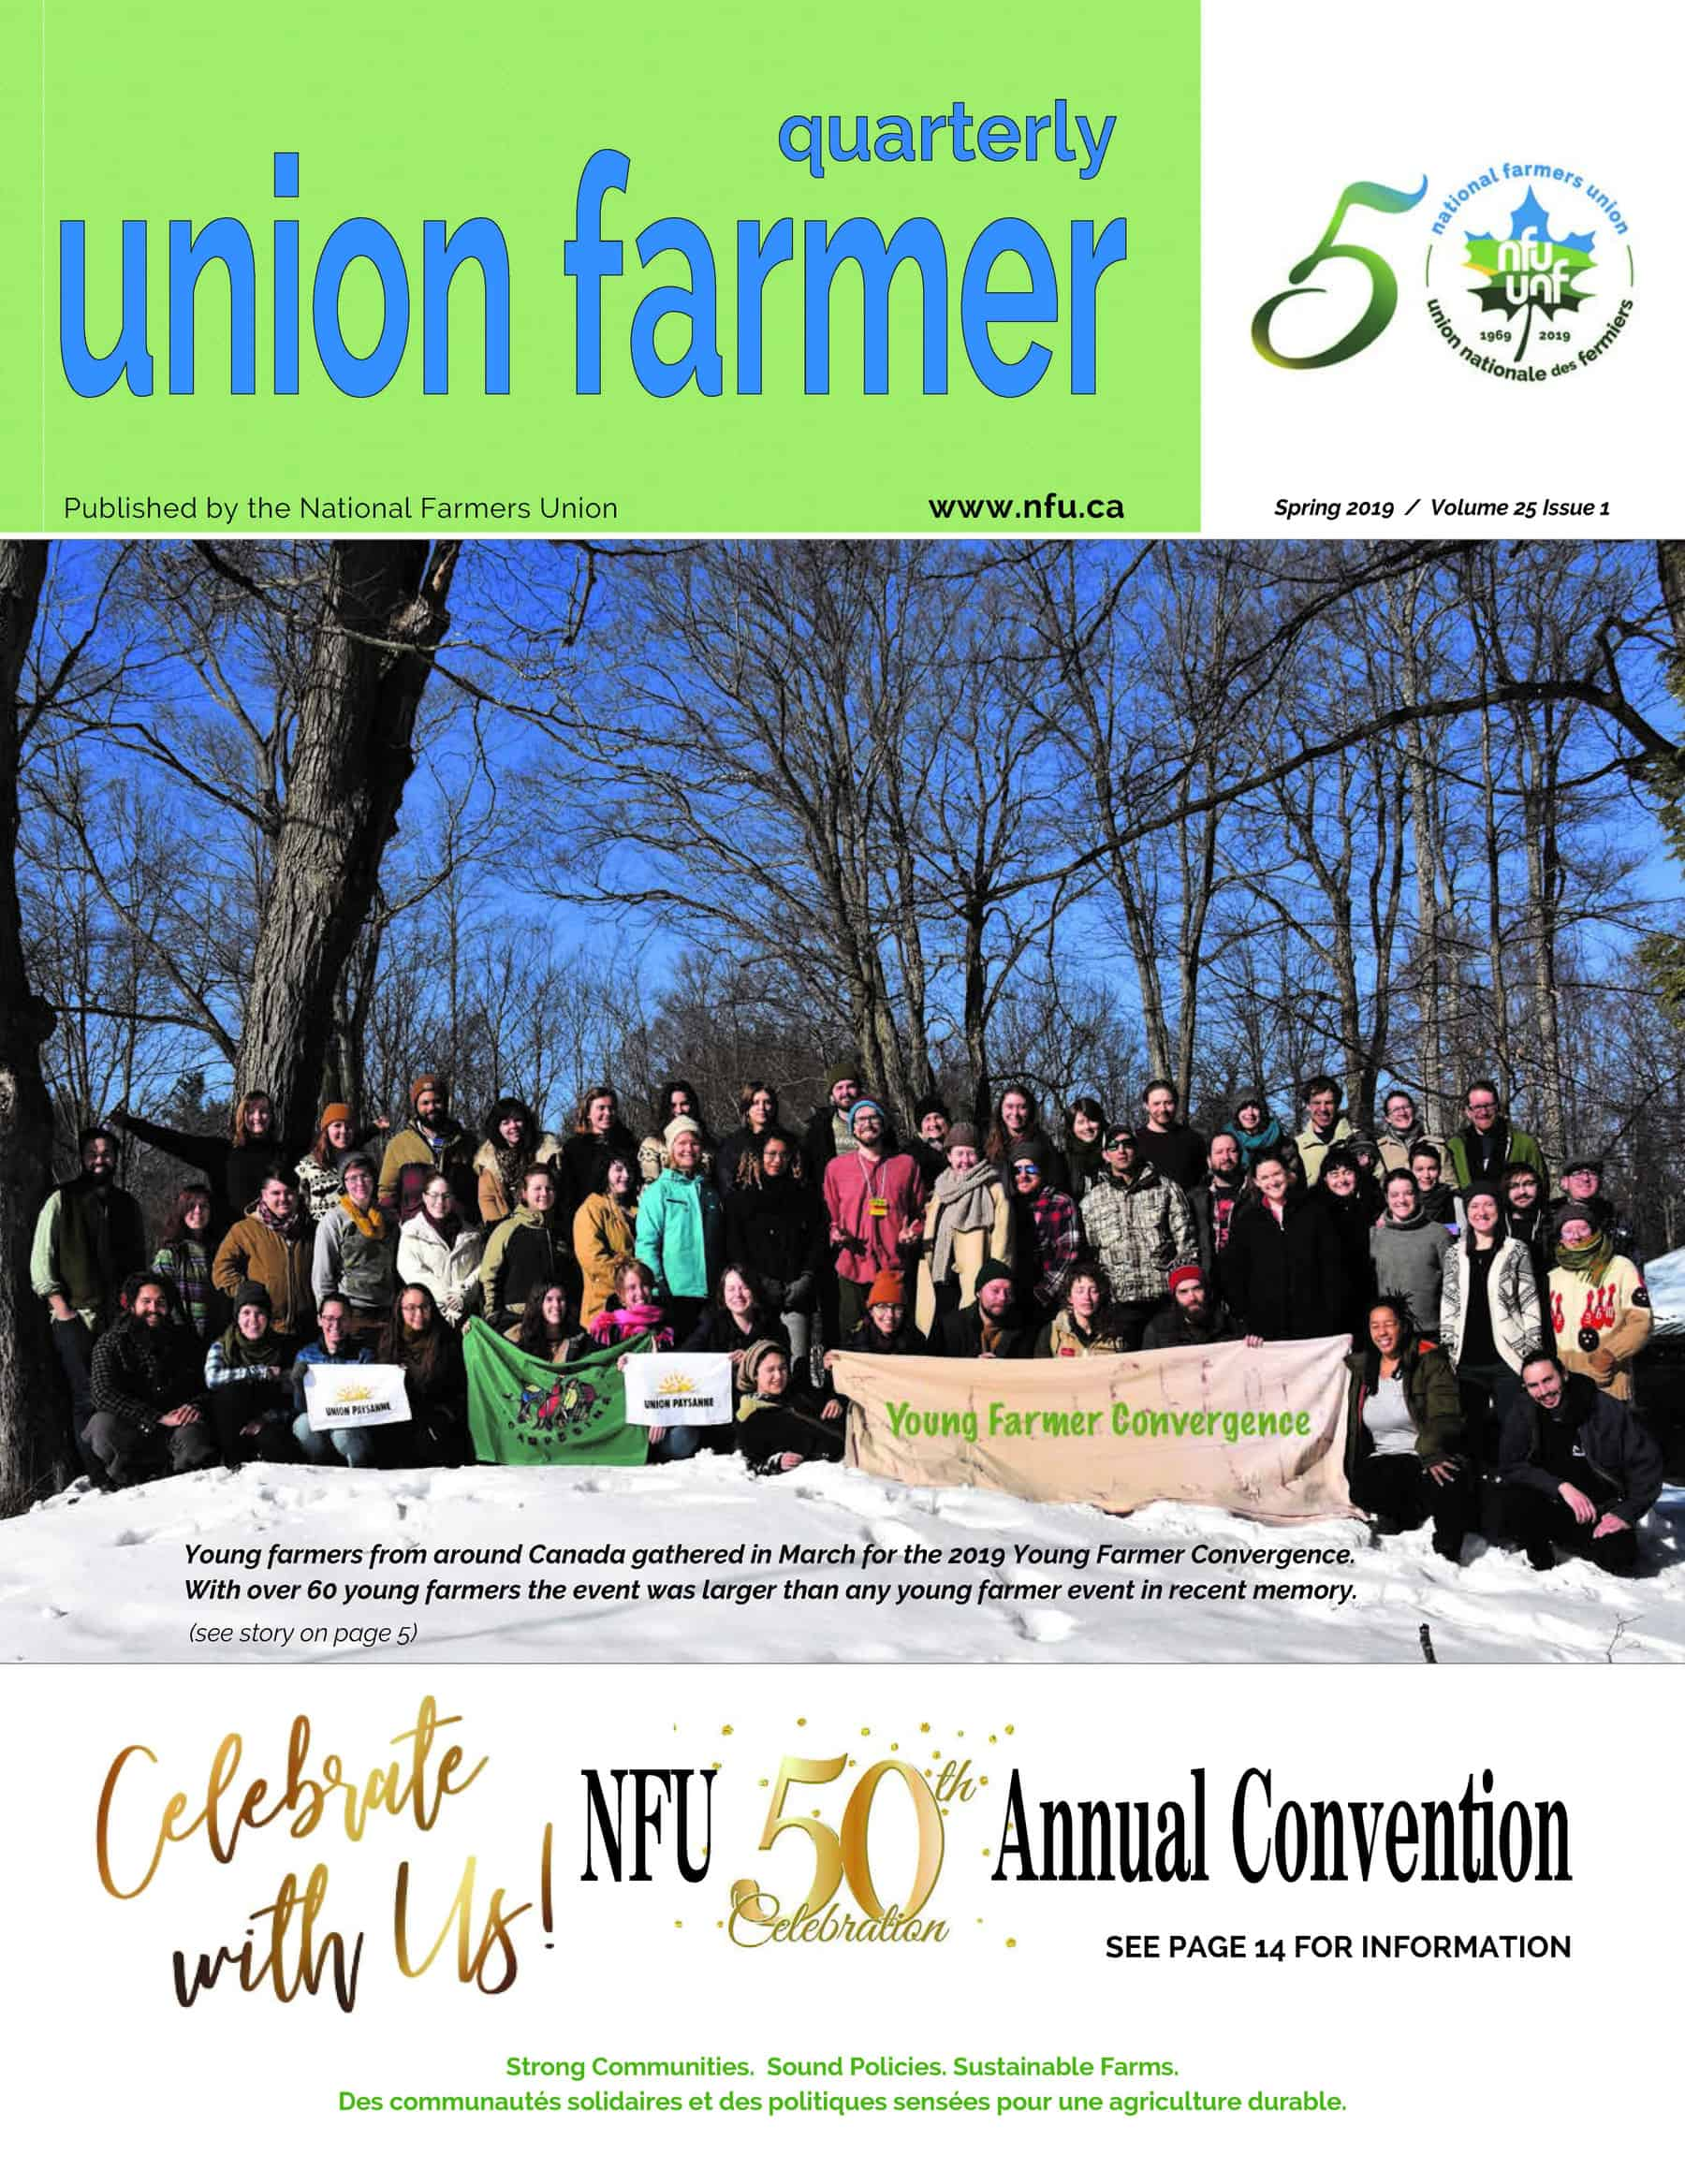 Union Farmer Quarterly: Spring 2019